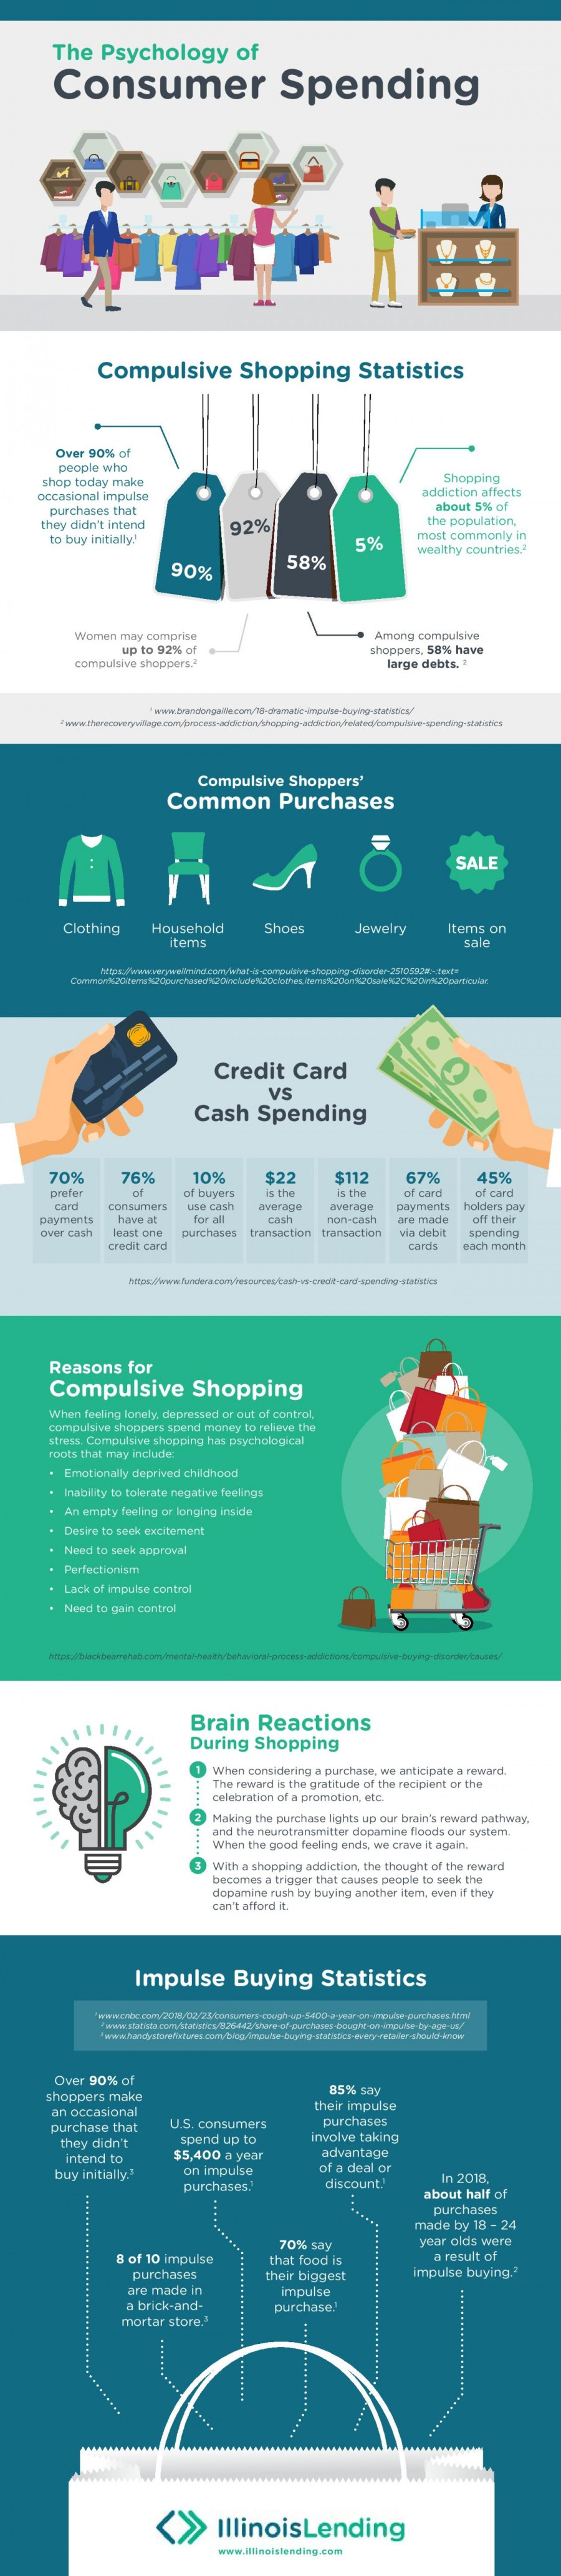 Understanding the Psychology of Consumer Spending